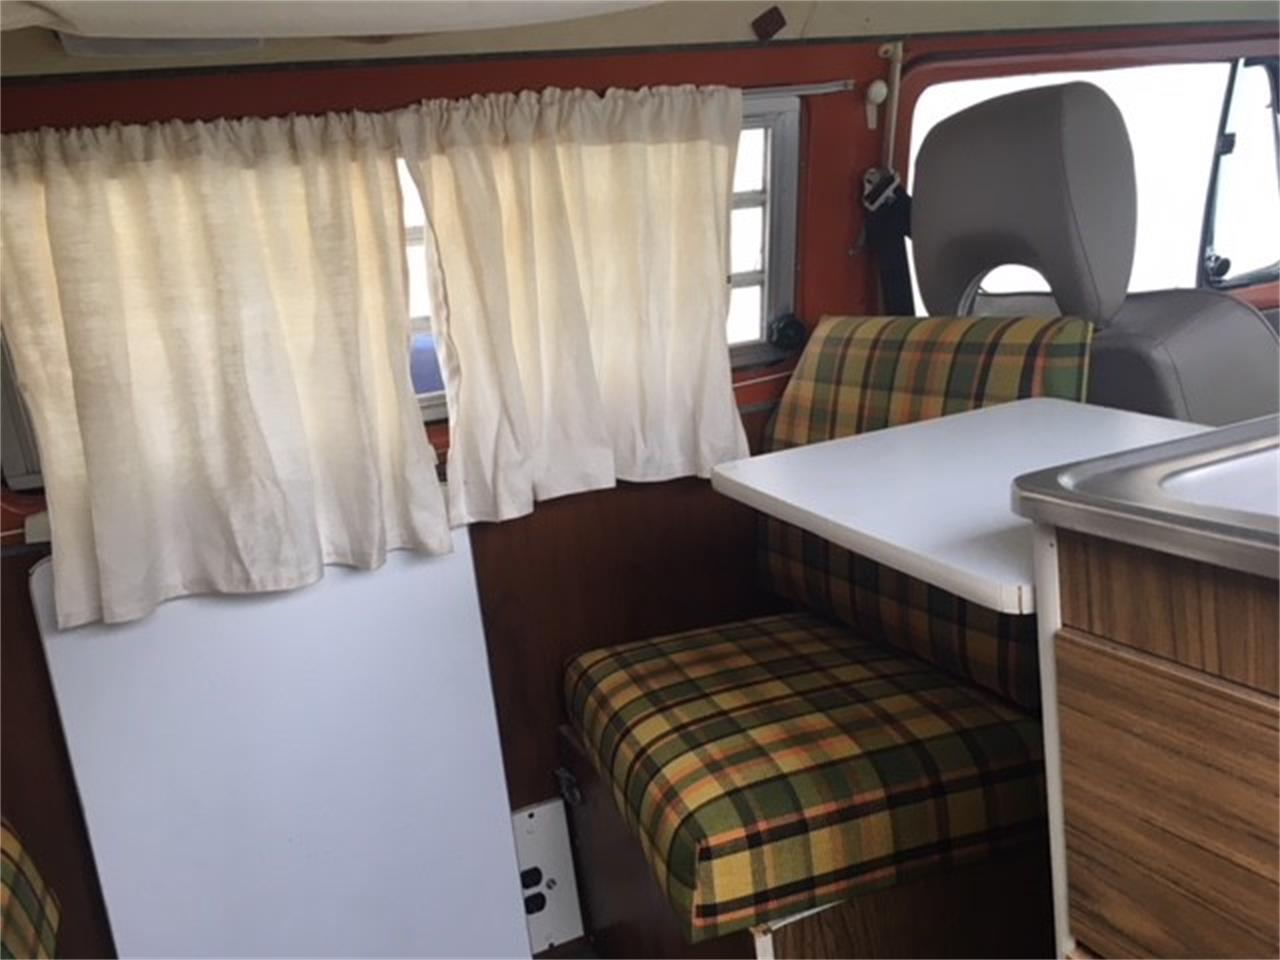 Large Picture of Classic '73 Westfalia Camper located in Laredo Texas - $20,000.00 Offered by a Private Seller - MTC1